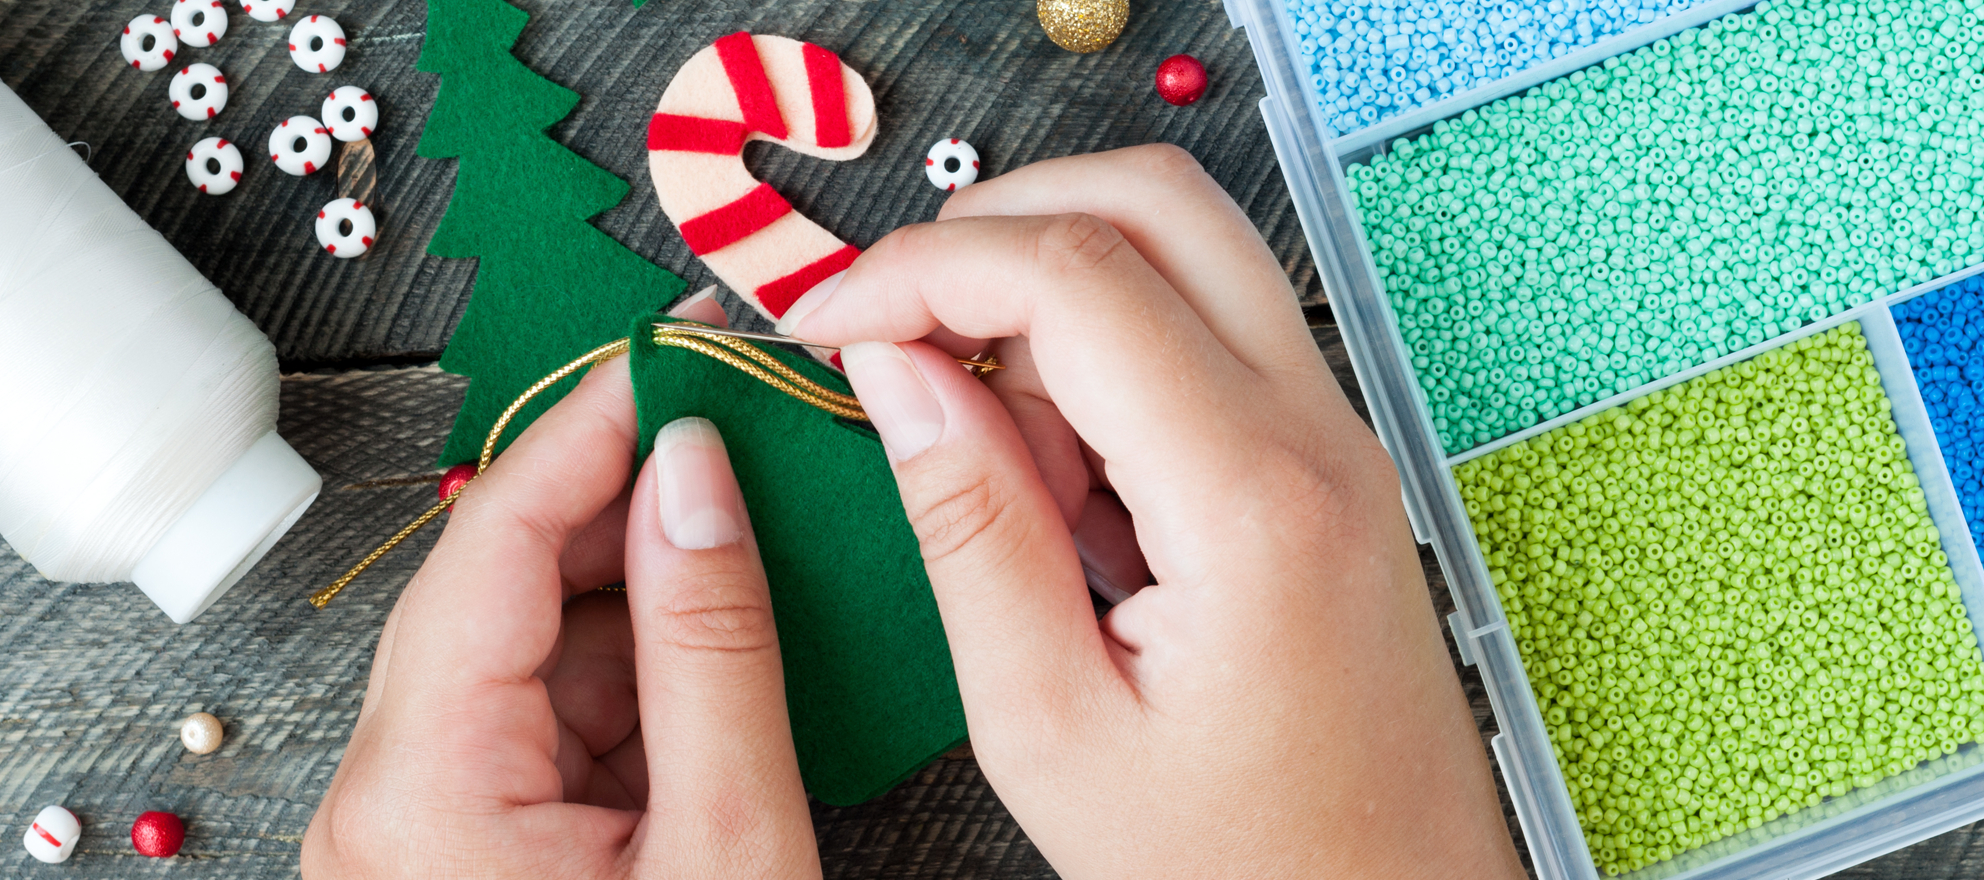 5 steps to turning holiday cheer into lead conversion